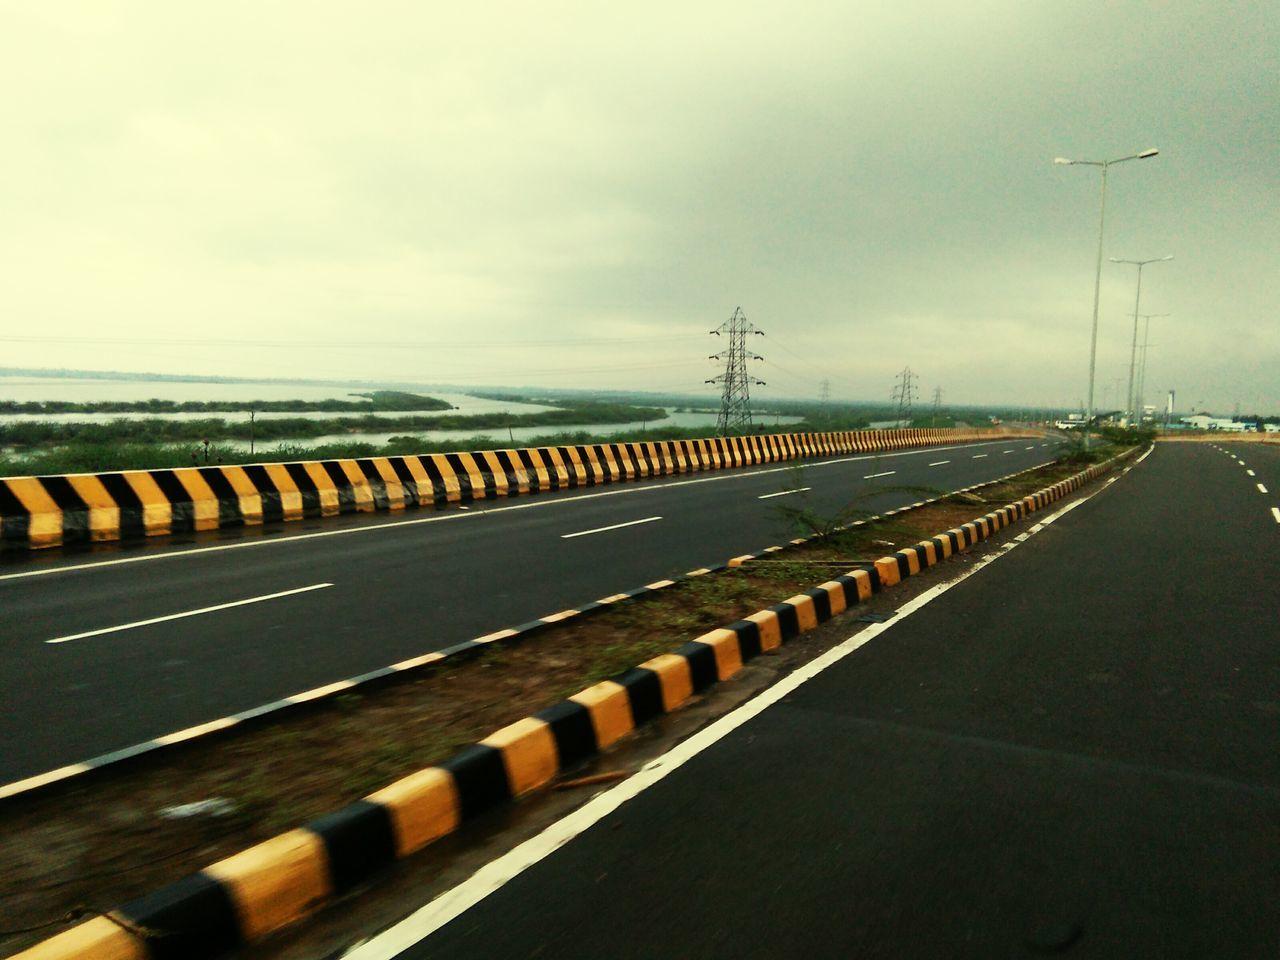 road, outdoors, sky, day, no people, water, sea, nature, the way forward, scenics, beauty in nature